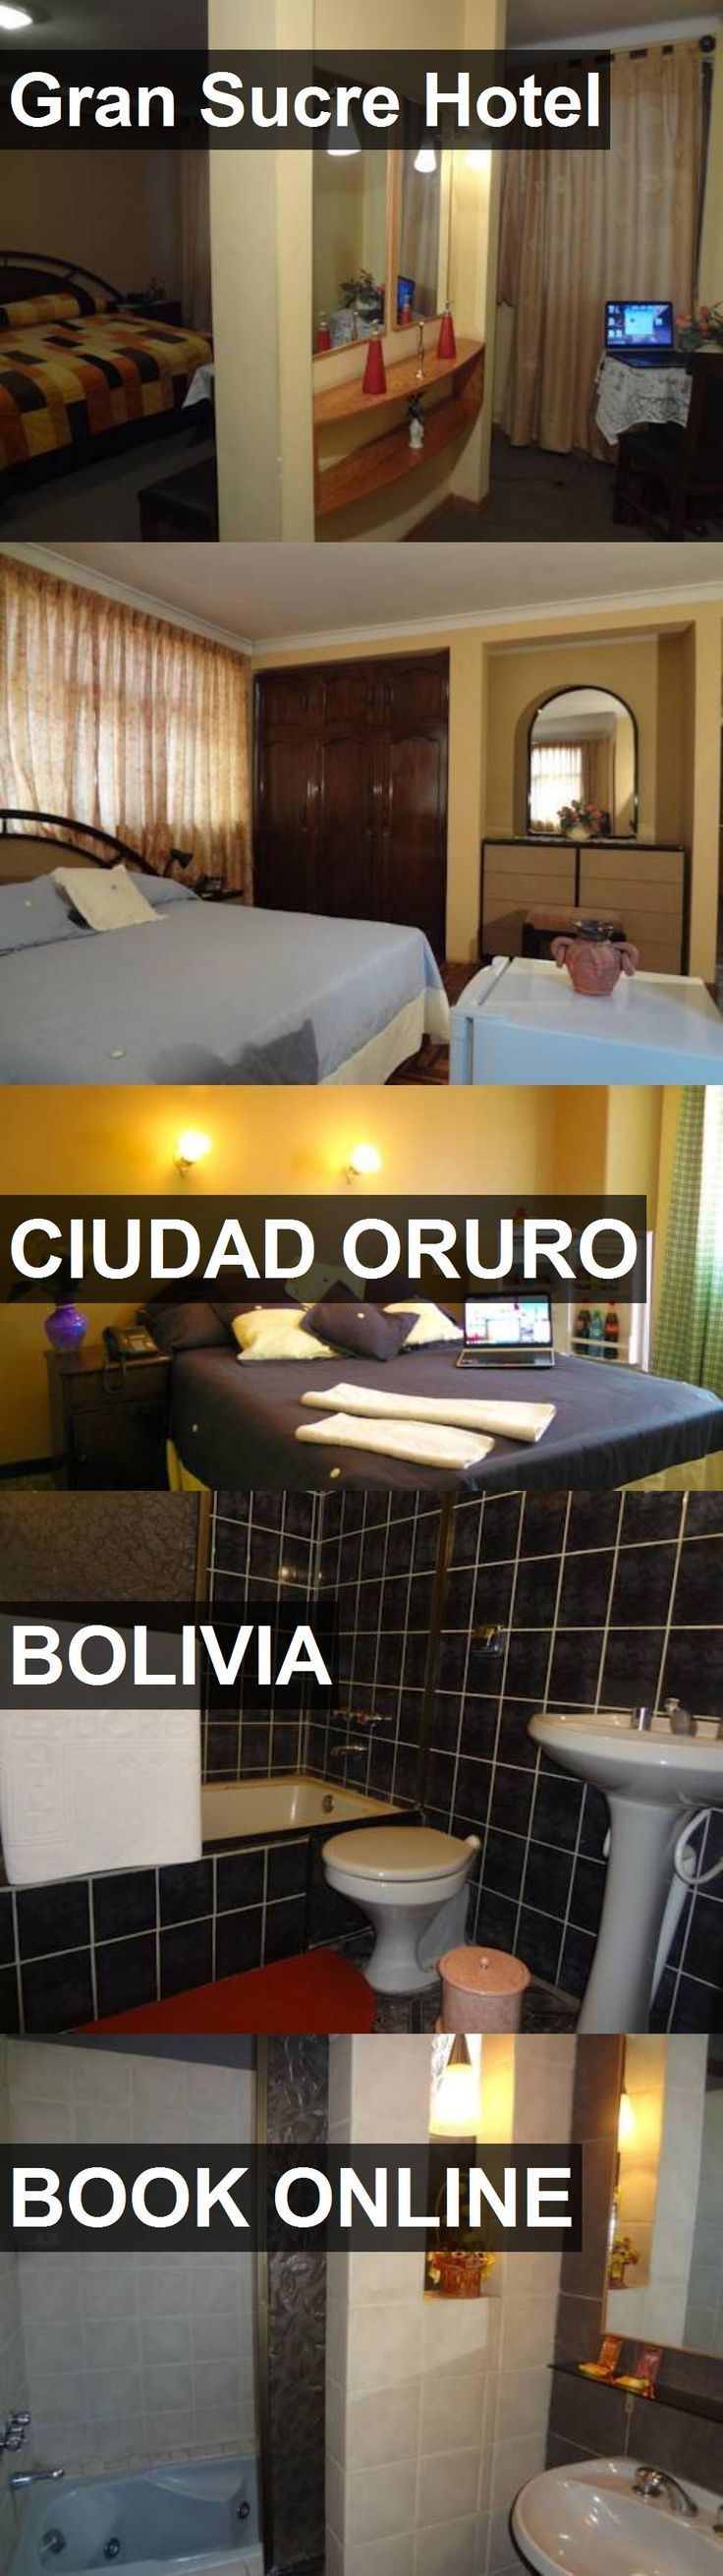 Gran Sucre Hotel in Ciudad Oruro, Bolivia. For more information, photos, reviews and best prices please follow the link. #Bolivia #CiudadOruro #travel #vacation #hotel